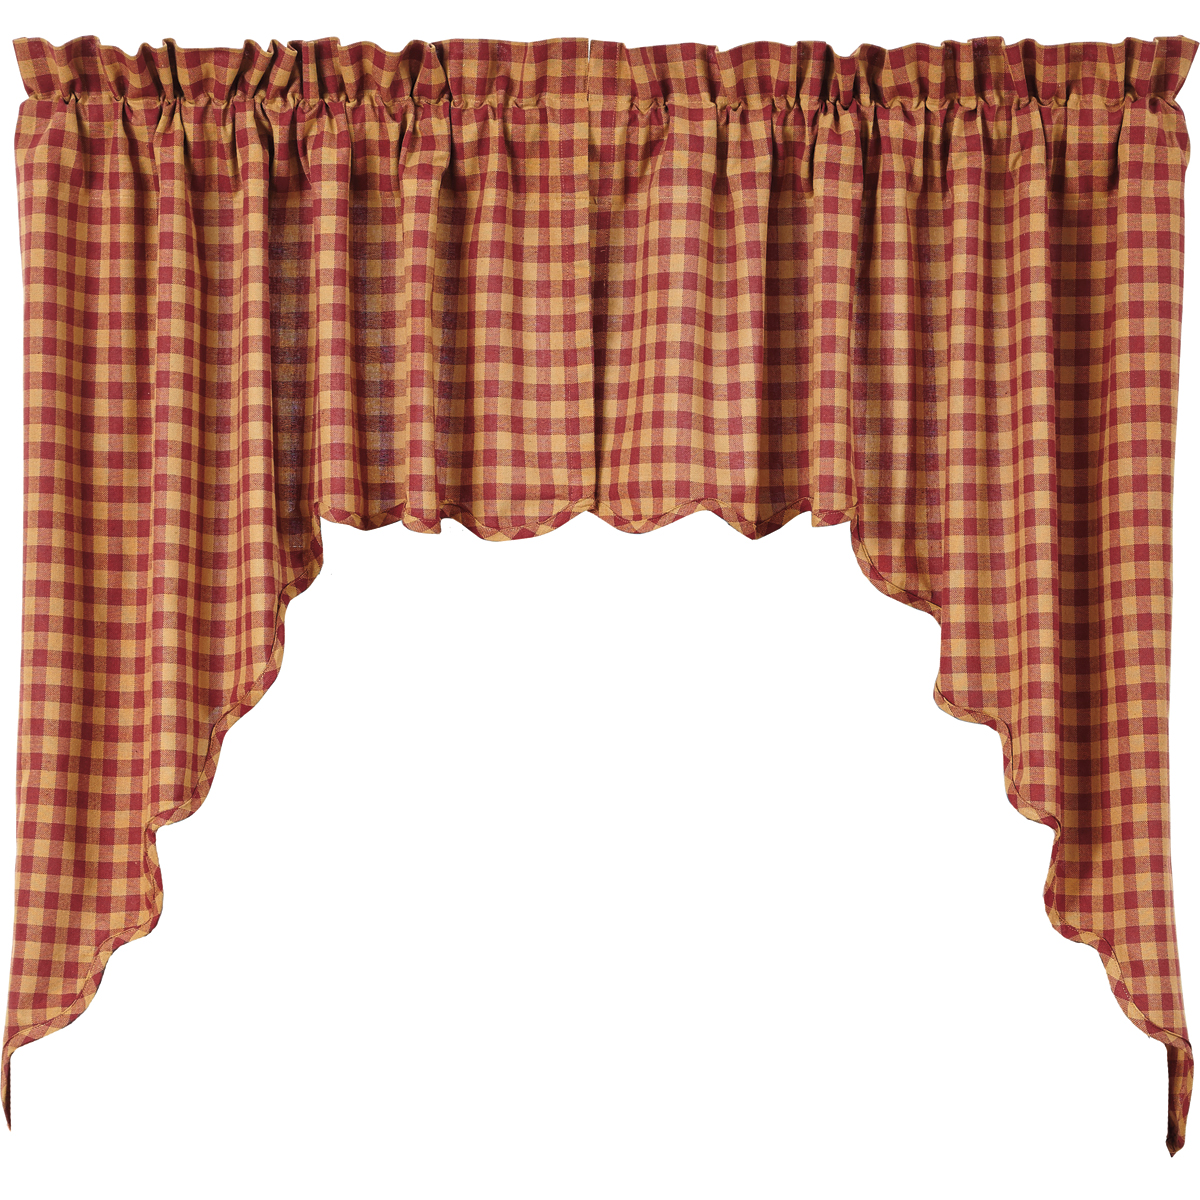 BURGUNDY CHECK Scalloped Swag - Set of 2 - 36x36x16 - Burgundy/Tan -VHC Brands